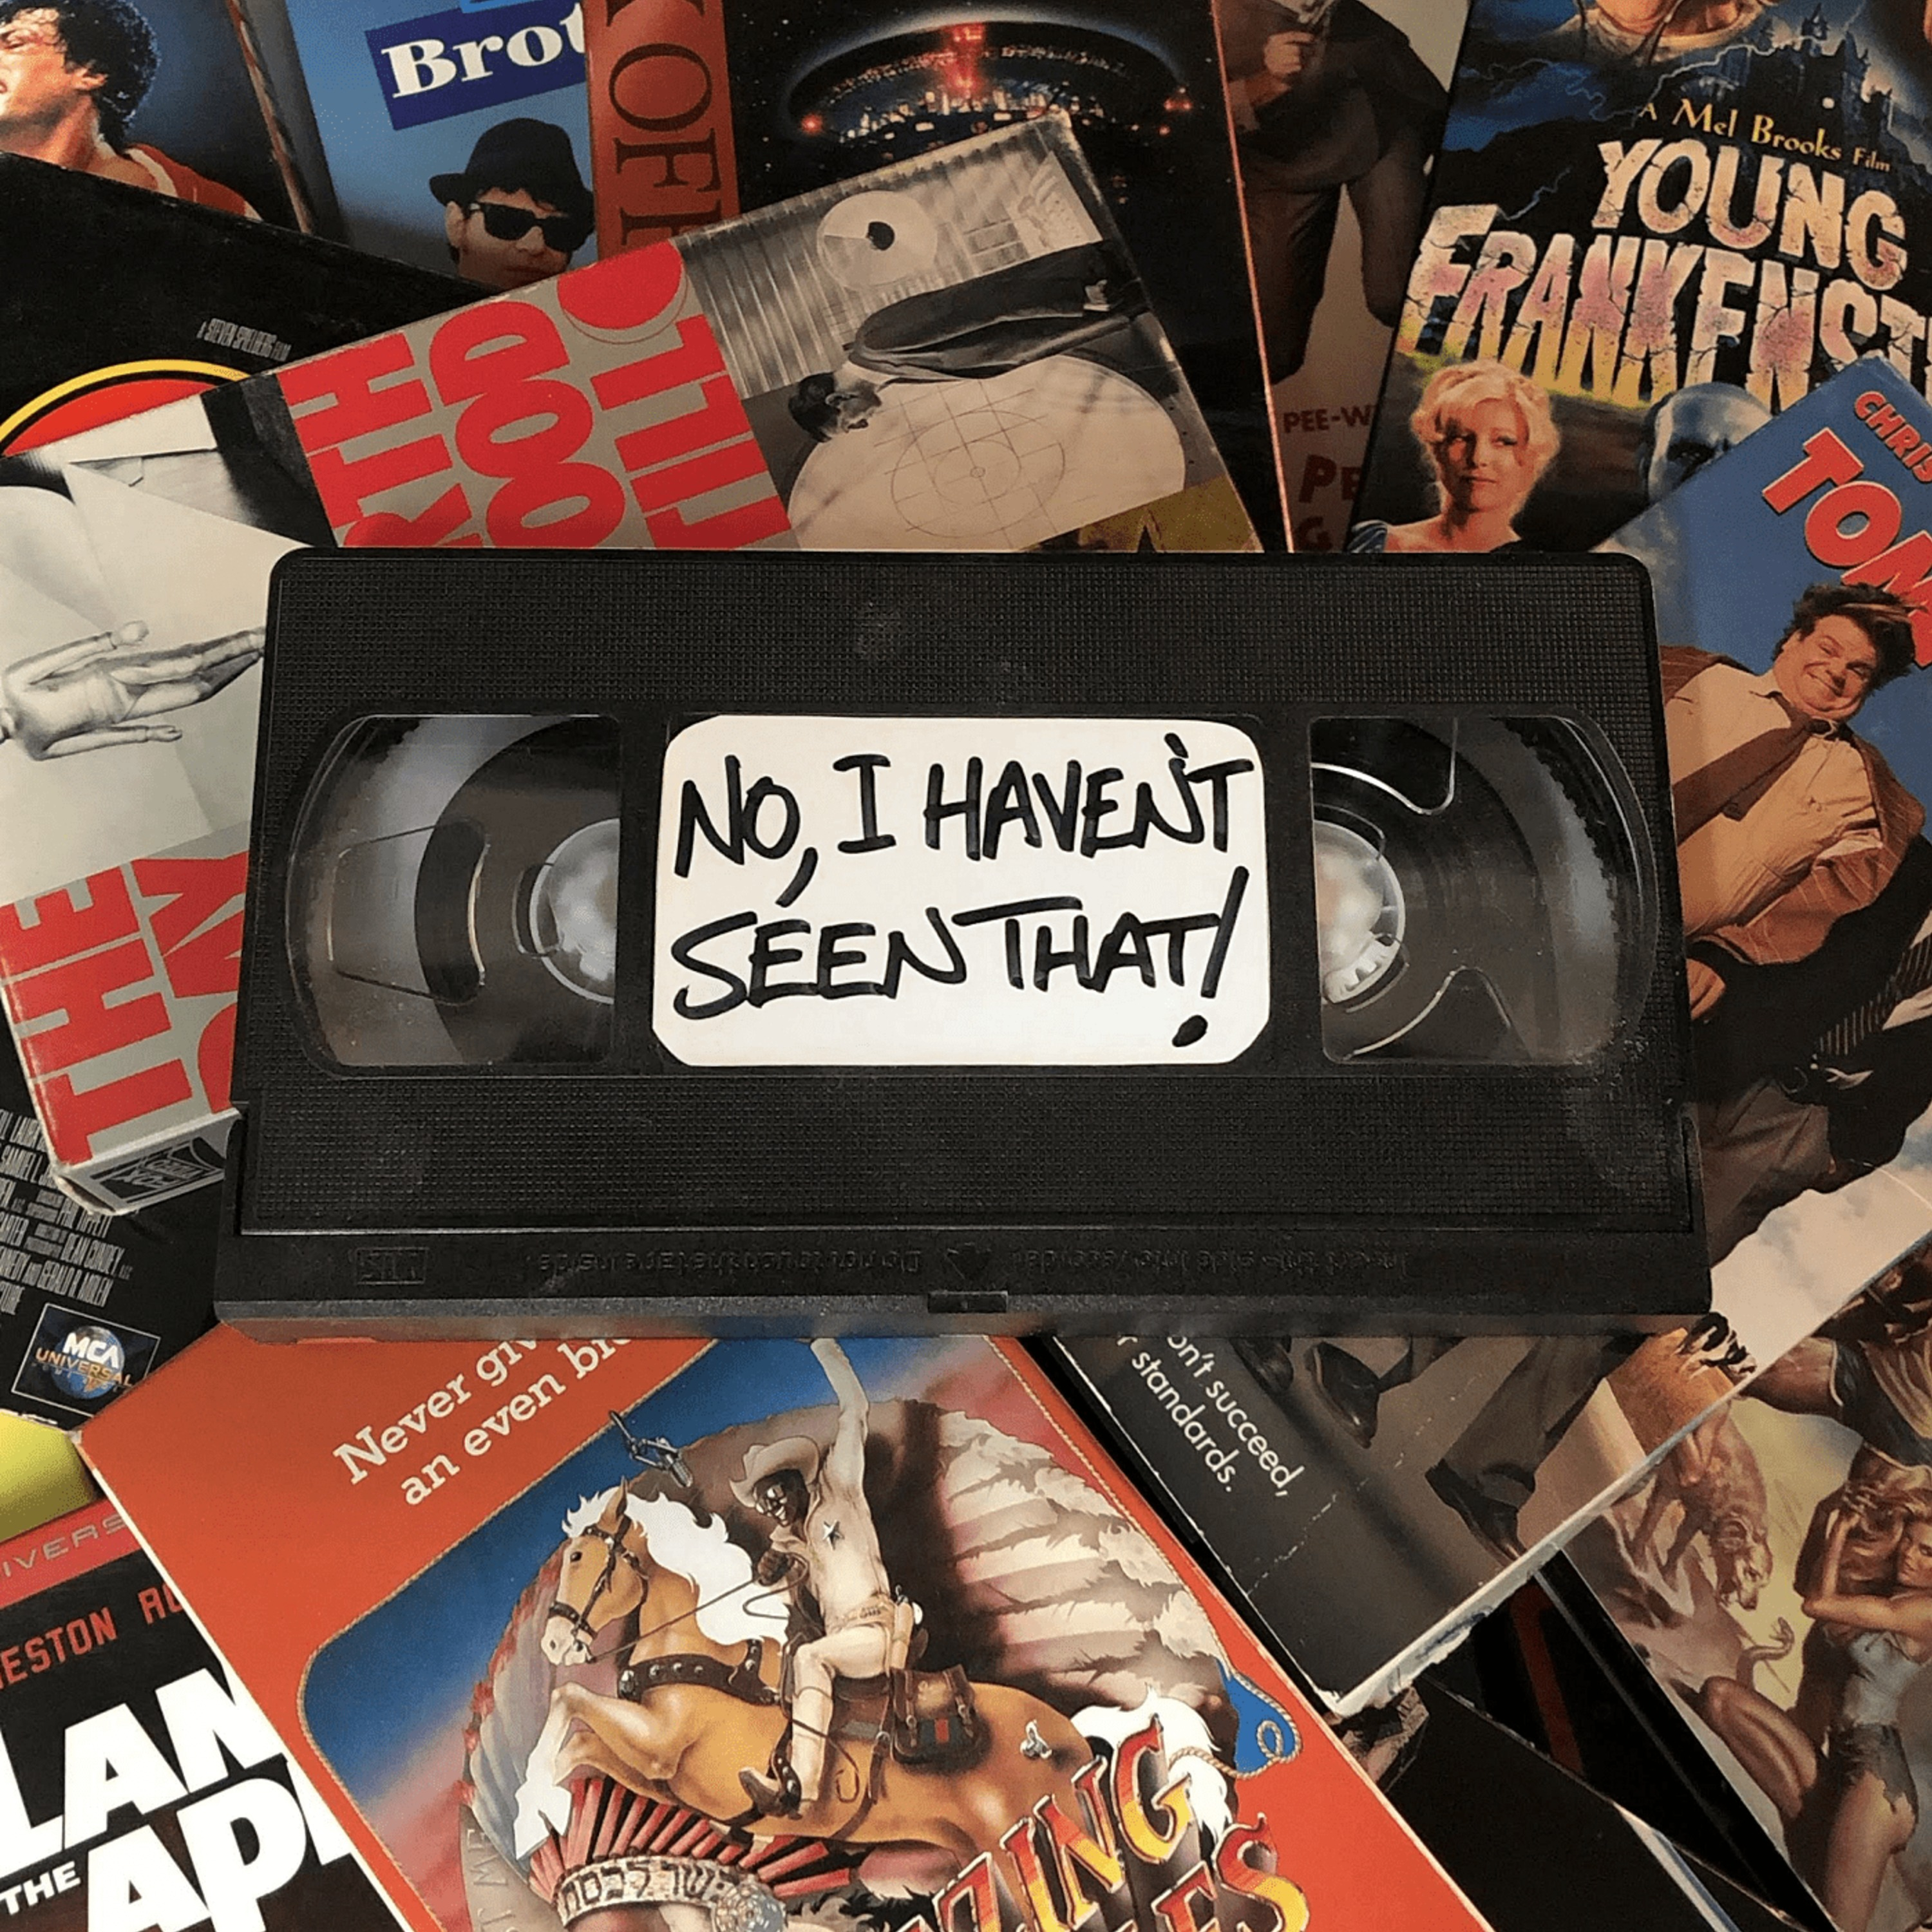 No, I Haven't Seen That! Episode 06 - The Naked Gun (1988)